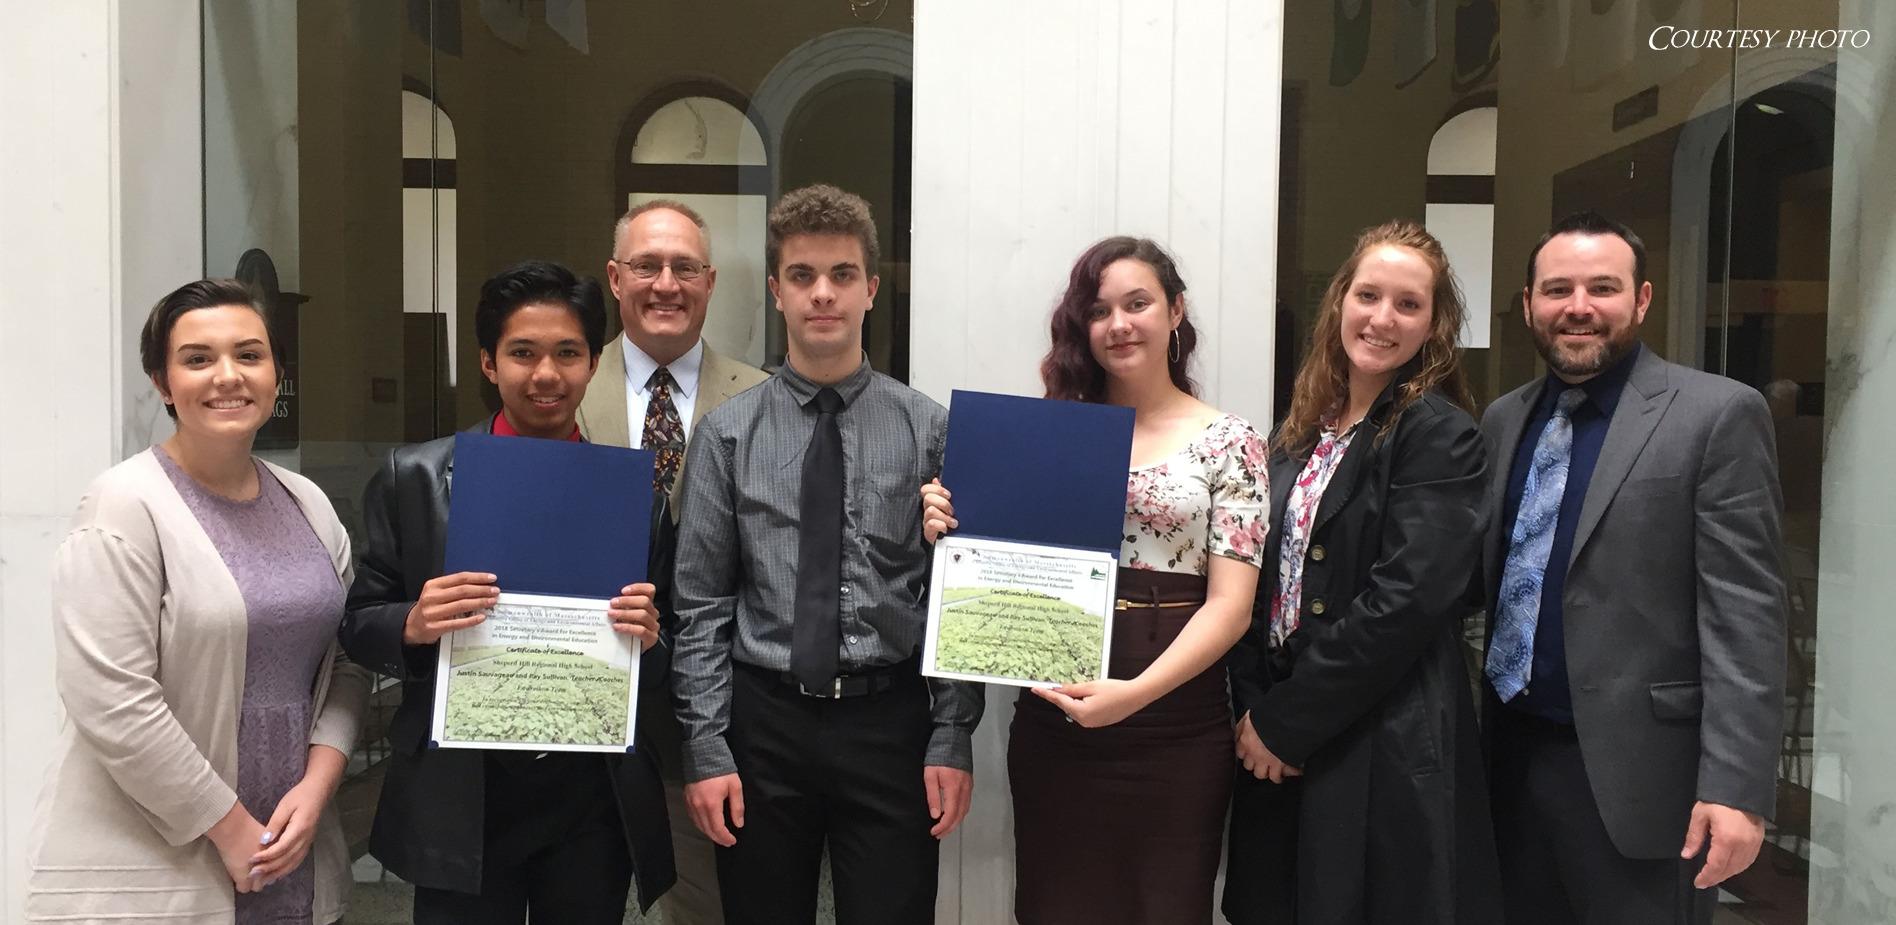 Shepherd Hill Envirothon team honored at State House